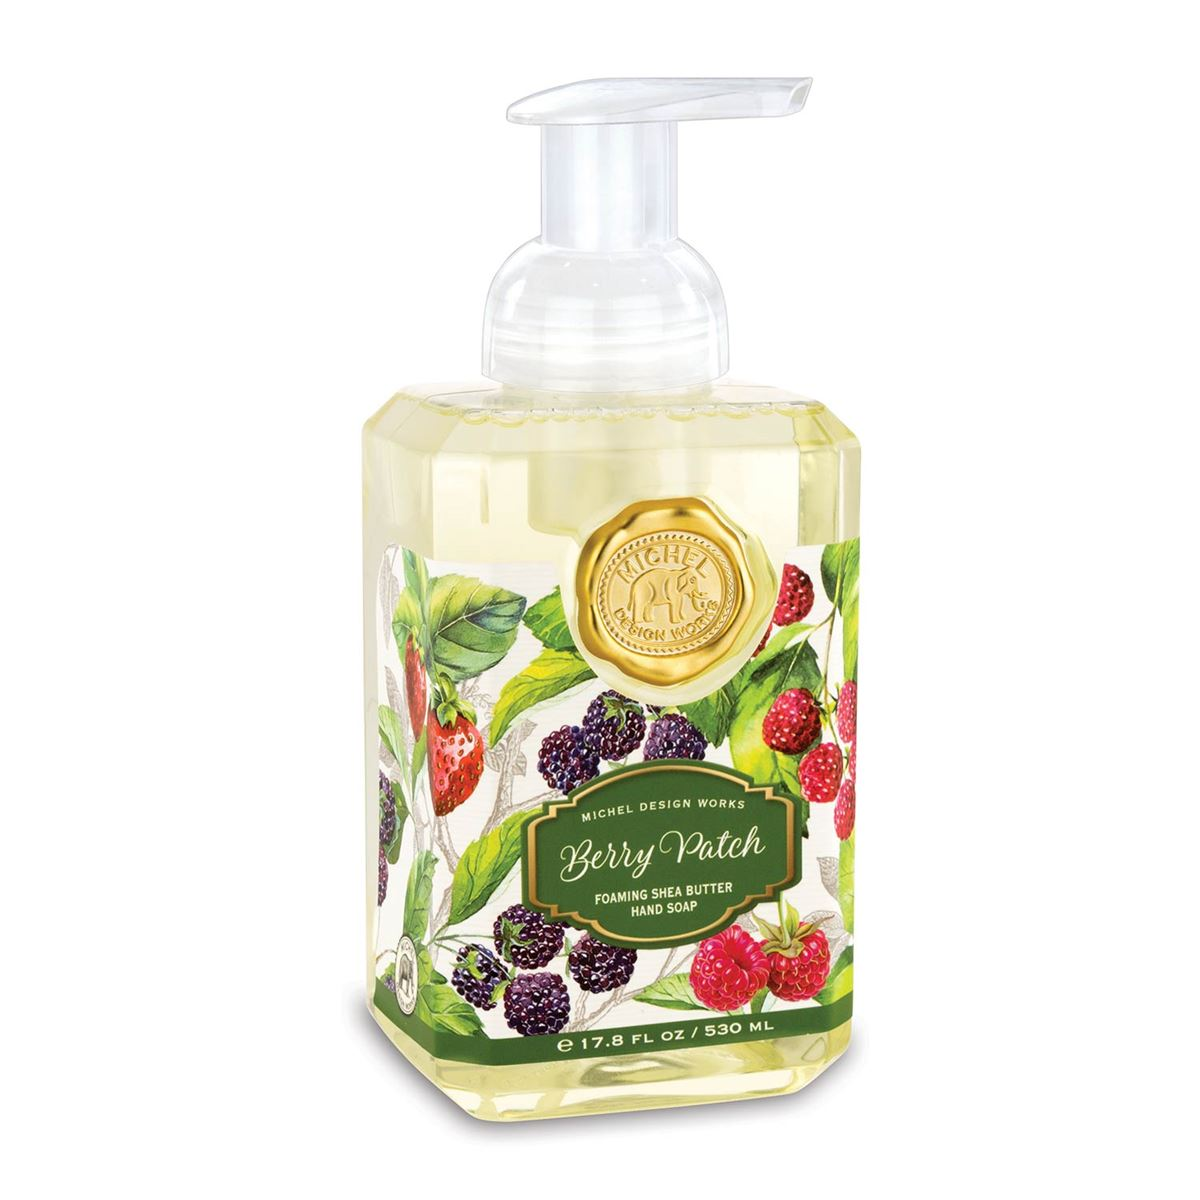 Foaming Hand Soap By Michel Design Works Berry Patch